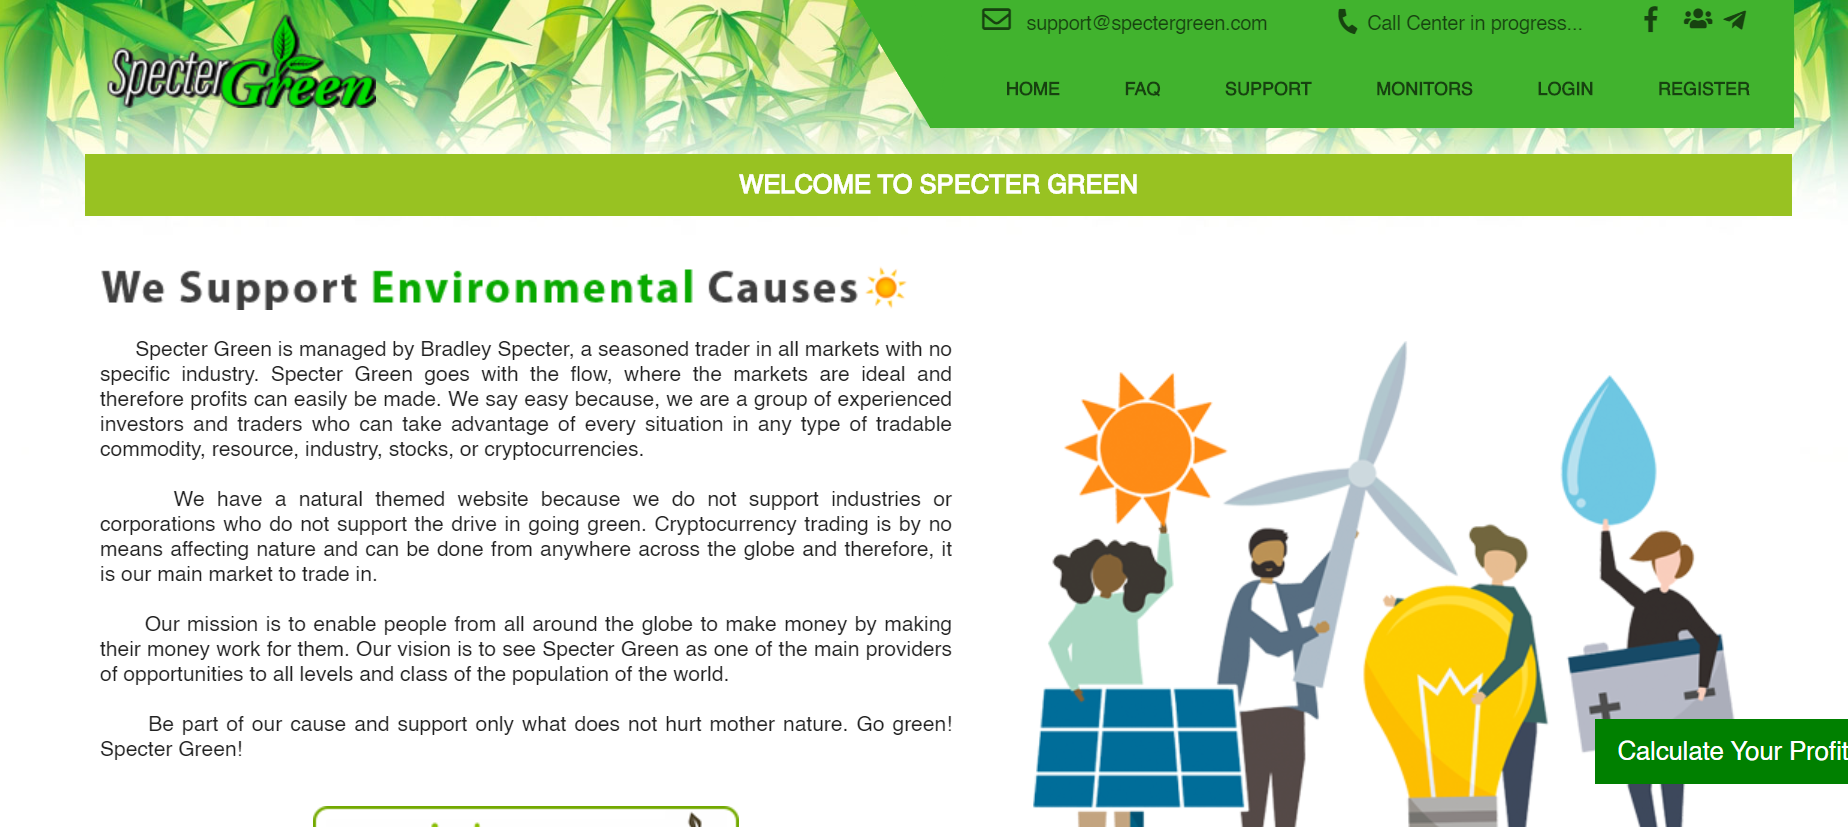 spectergreen.com review